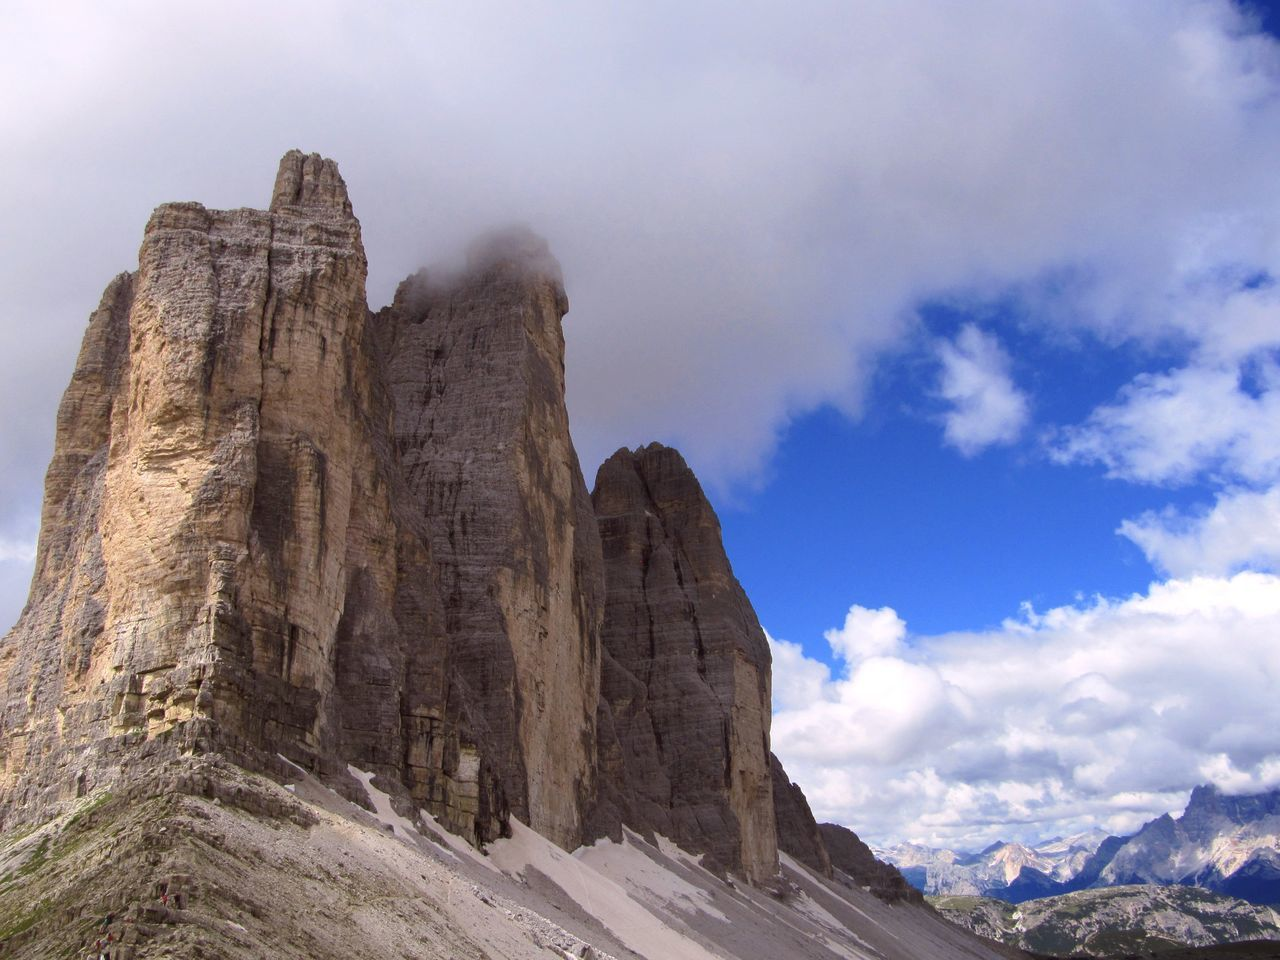 The Environmentalist – 2014 EyeEm Awards Dolomiti Landscape Rocky Mountains Italy, Tre Cime Di Lavaredo